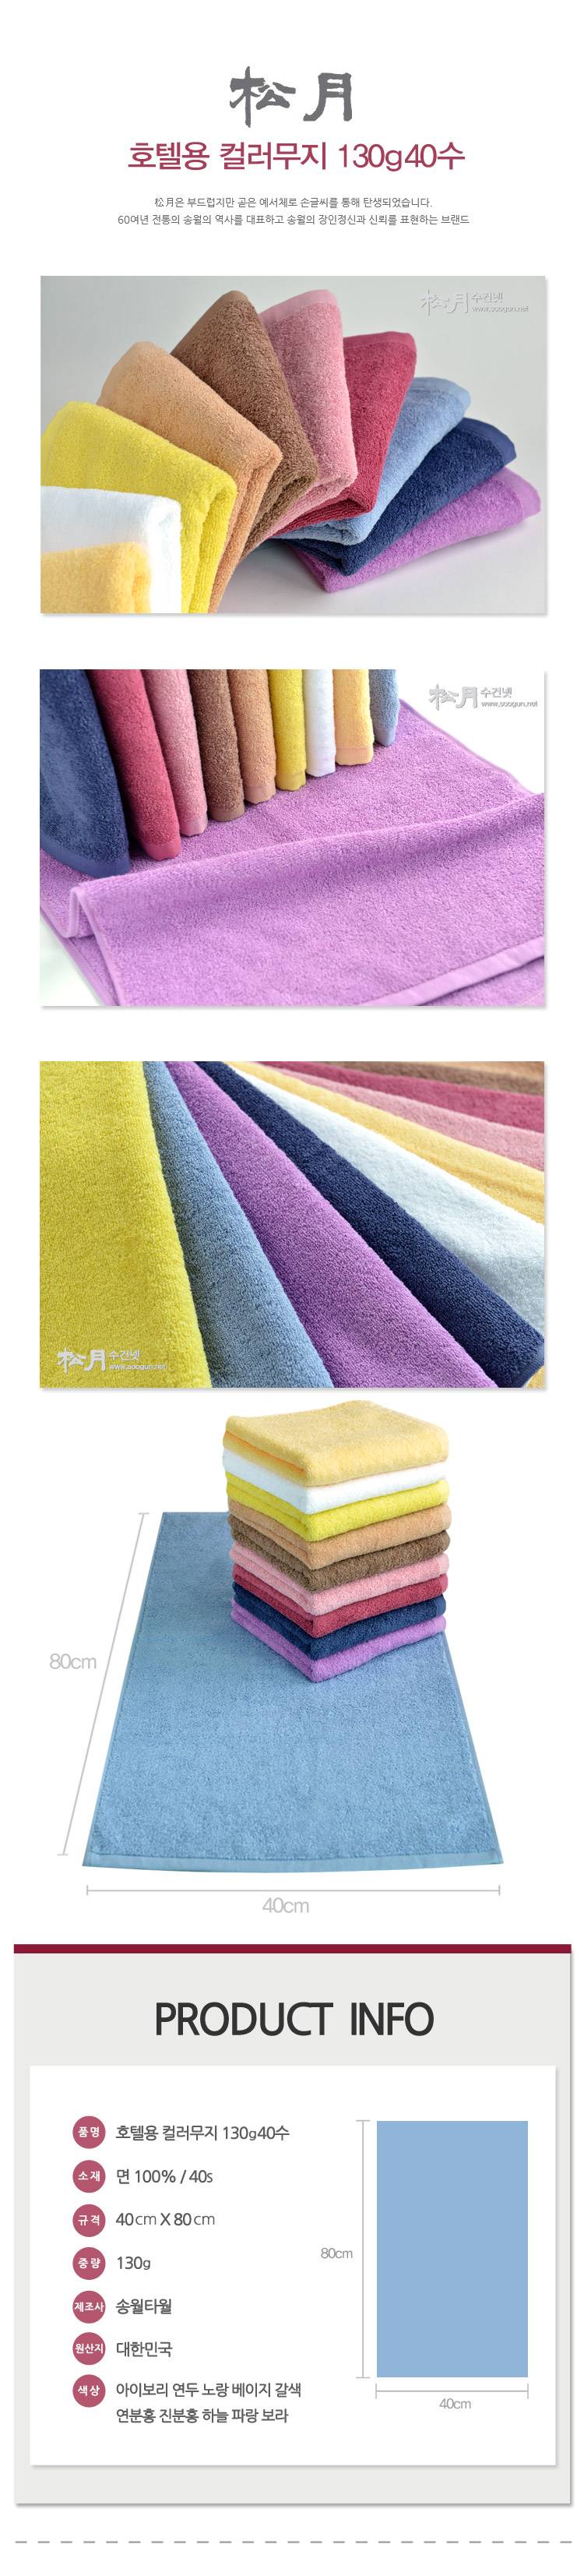 [ songwol ] Color Plain Towel 40 For Hotel 130G (40X80Cm/130G)